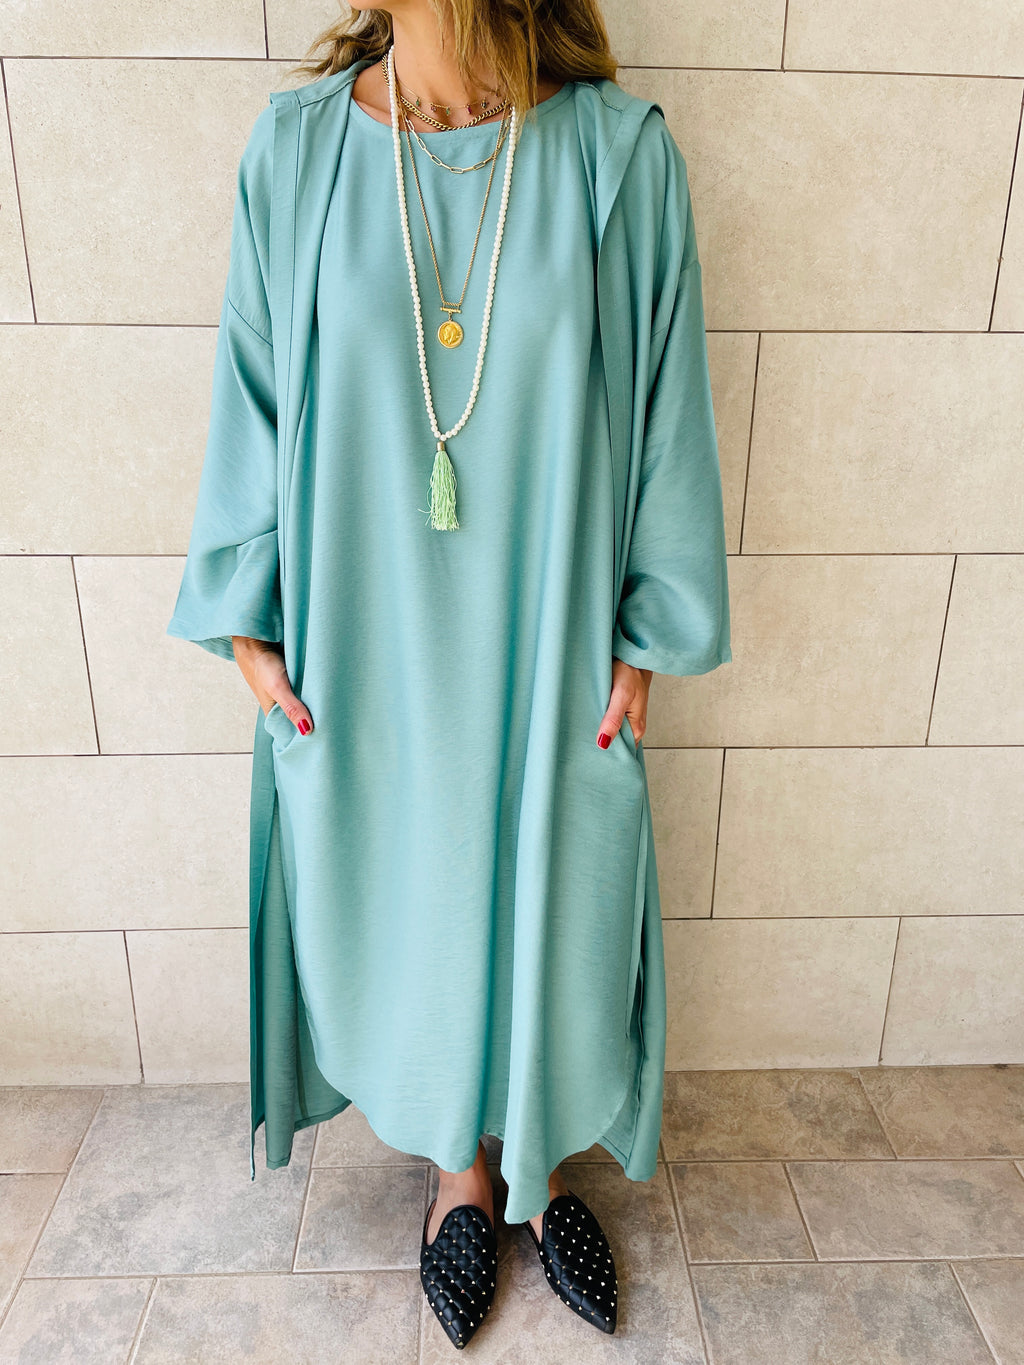 2 Piece Mint Marrakech Set